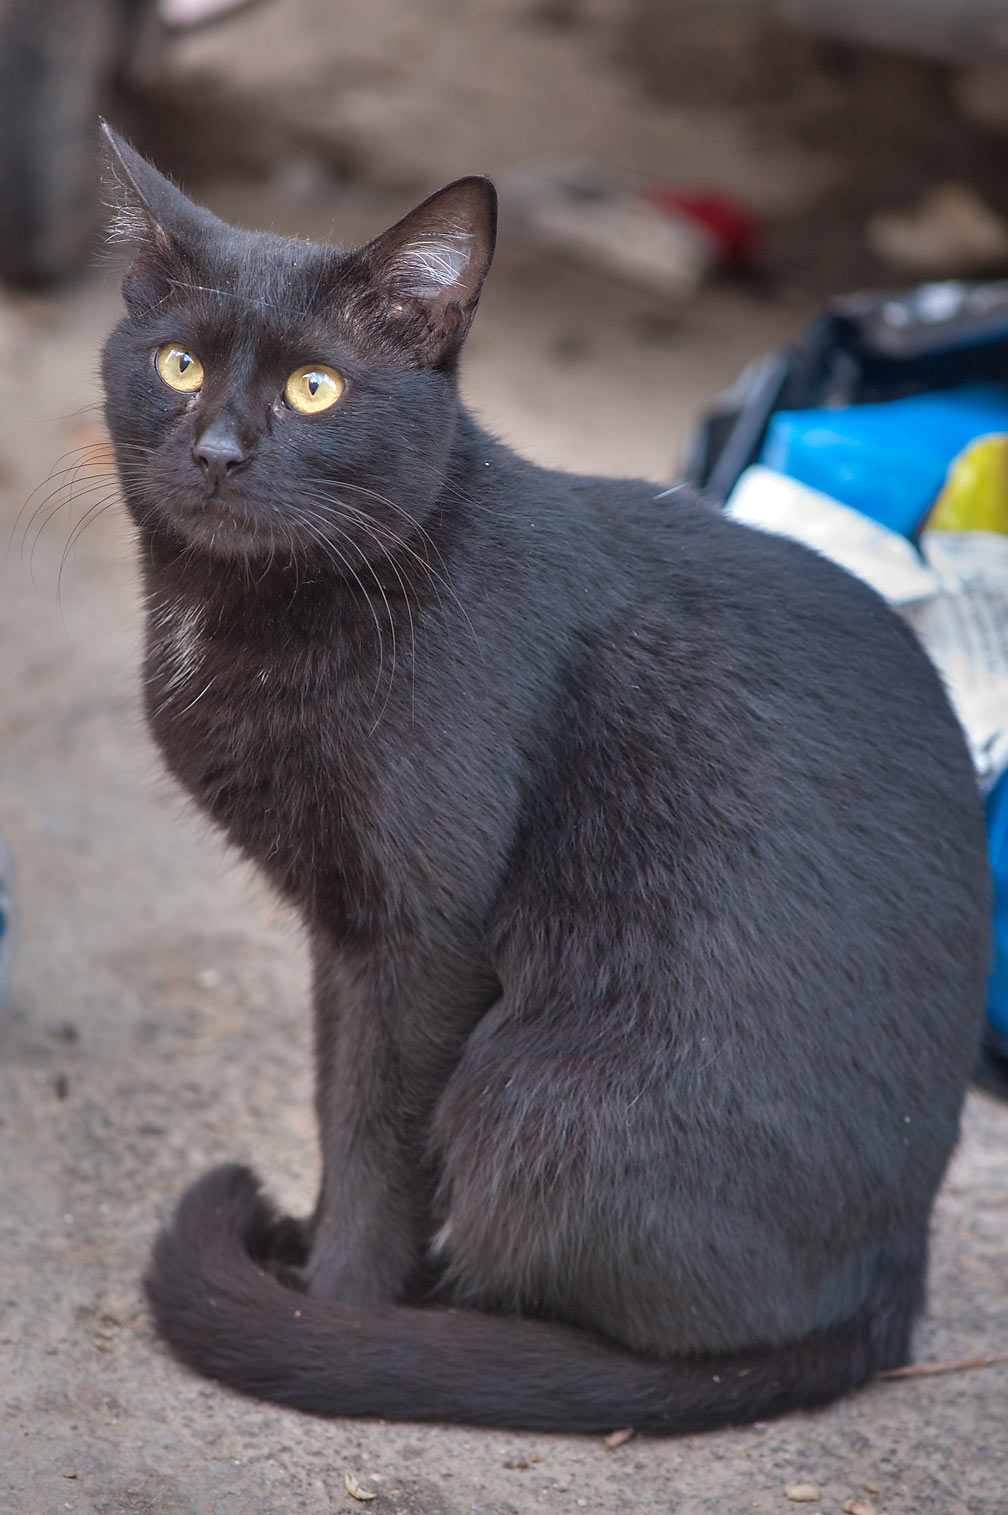 Black cat near Umm Wishad St. in Musheirib area. Doha, Qatar